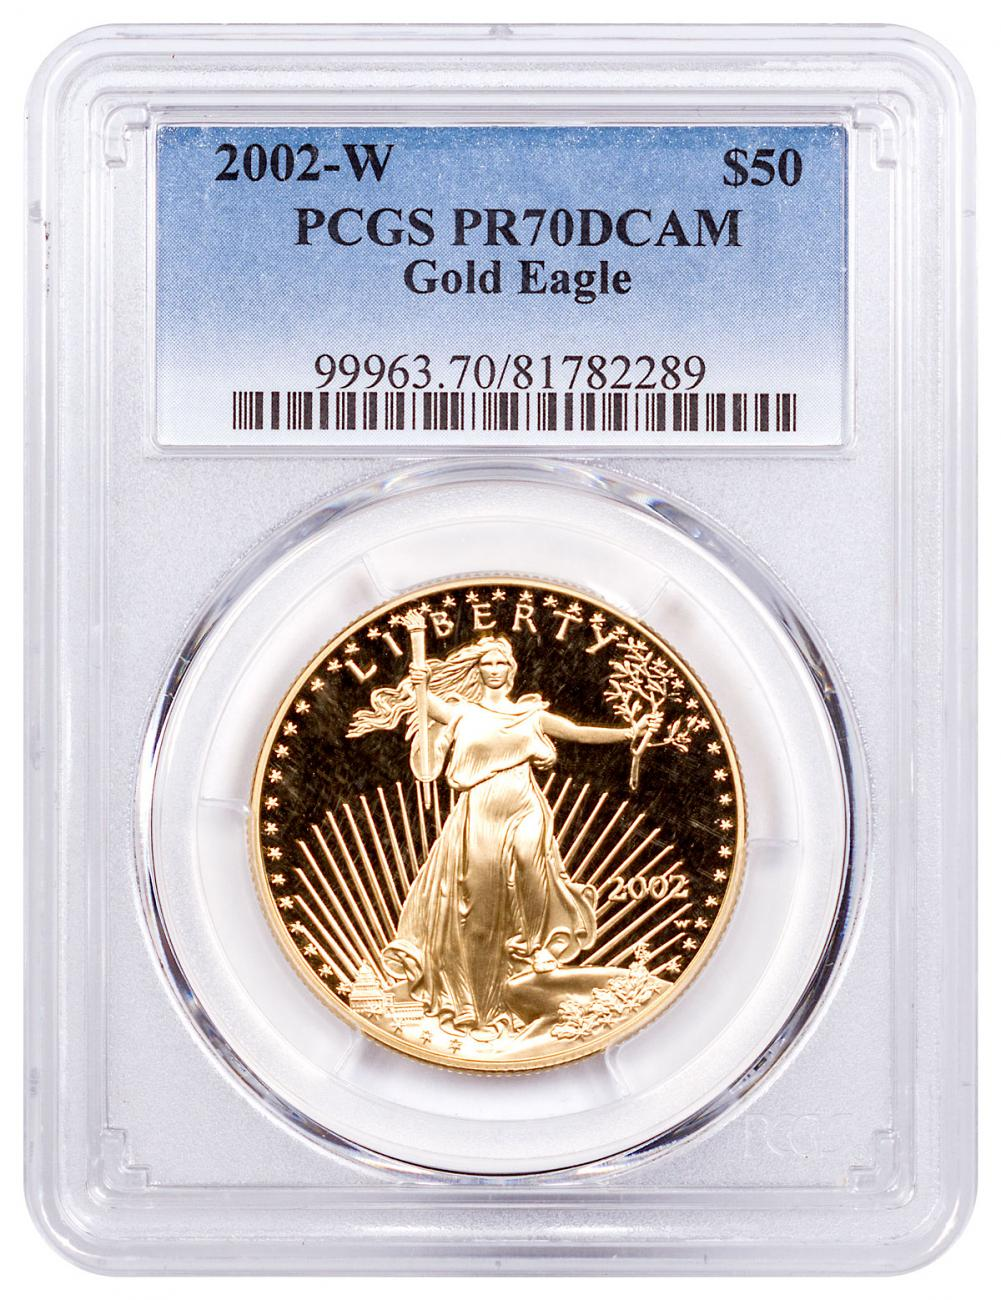 2002-W 1 oz Gold American Eagle Proof $50 PCGS PR70 DCAM